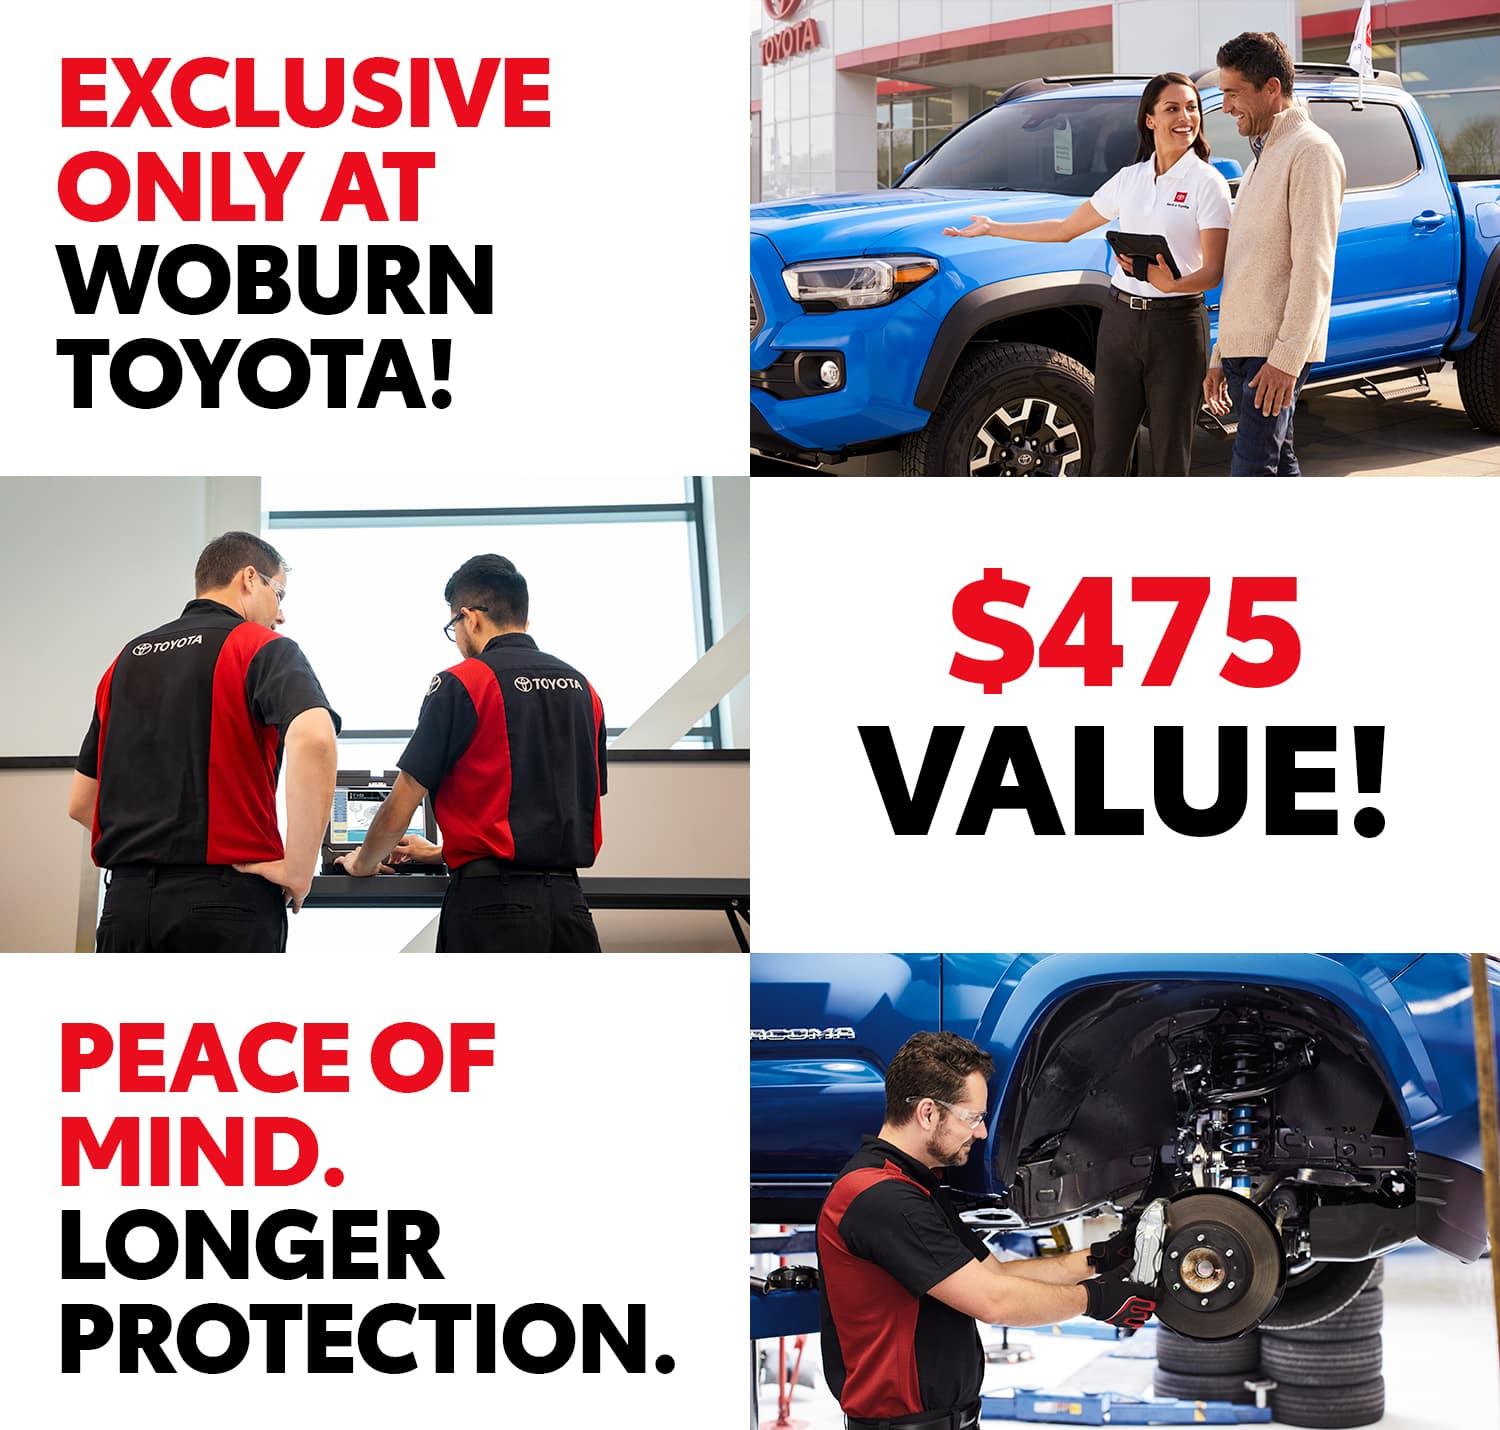 exclusive only at woburn toyota $475 Value Peace of Mind Longer Protection